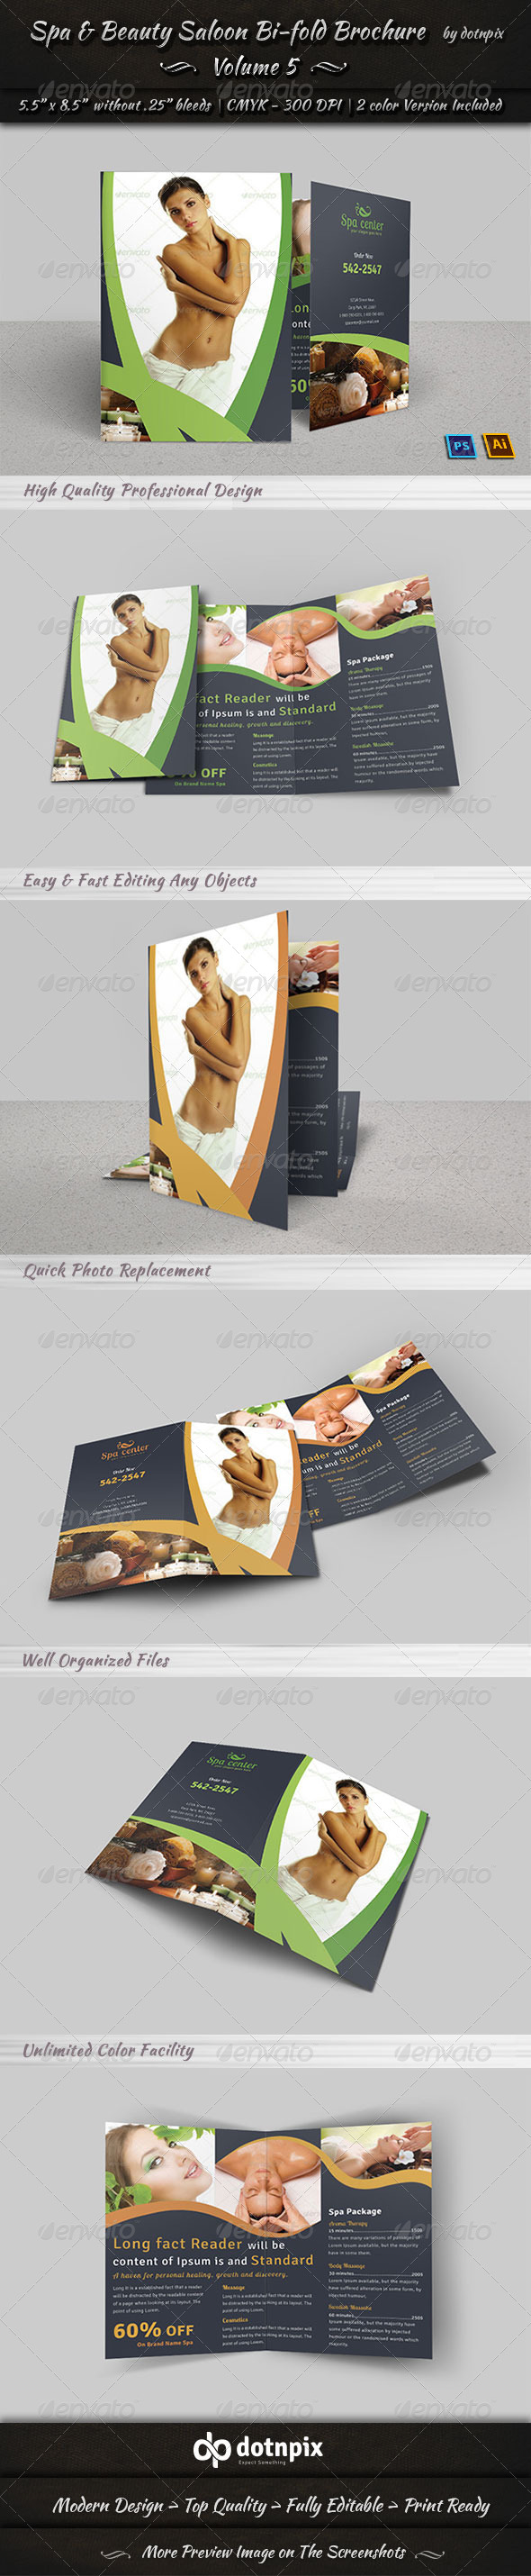 Spa & Beauty Saloon Bi-fold Brochure Volume 5